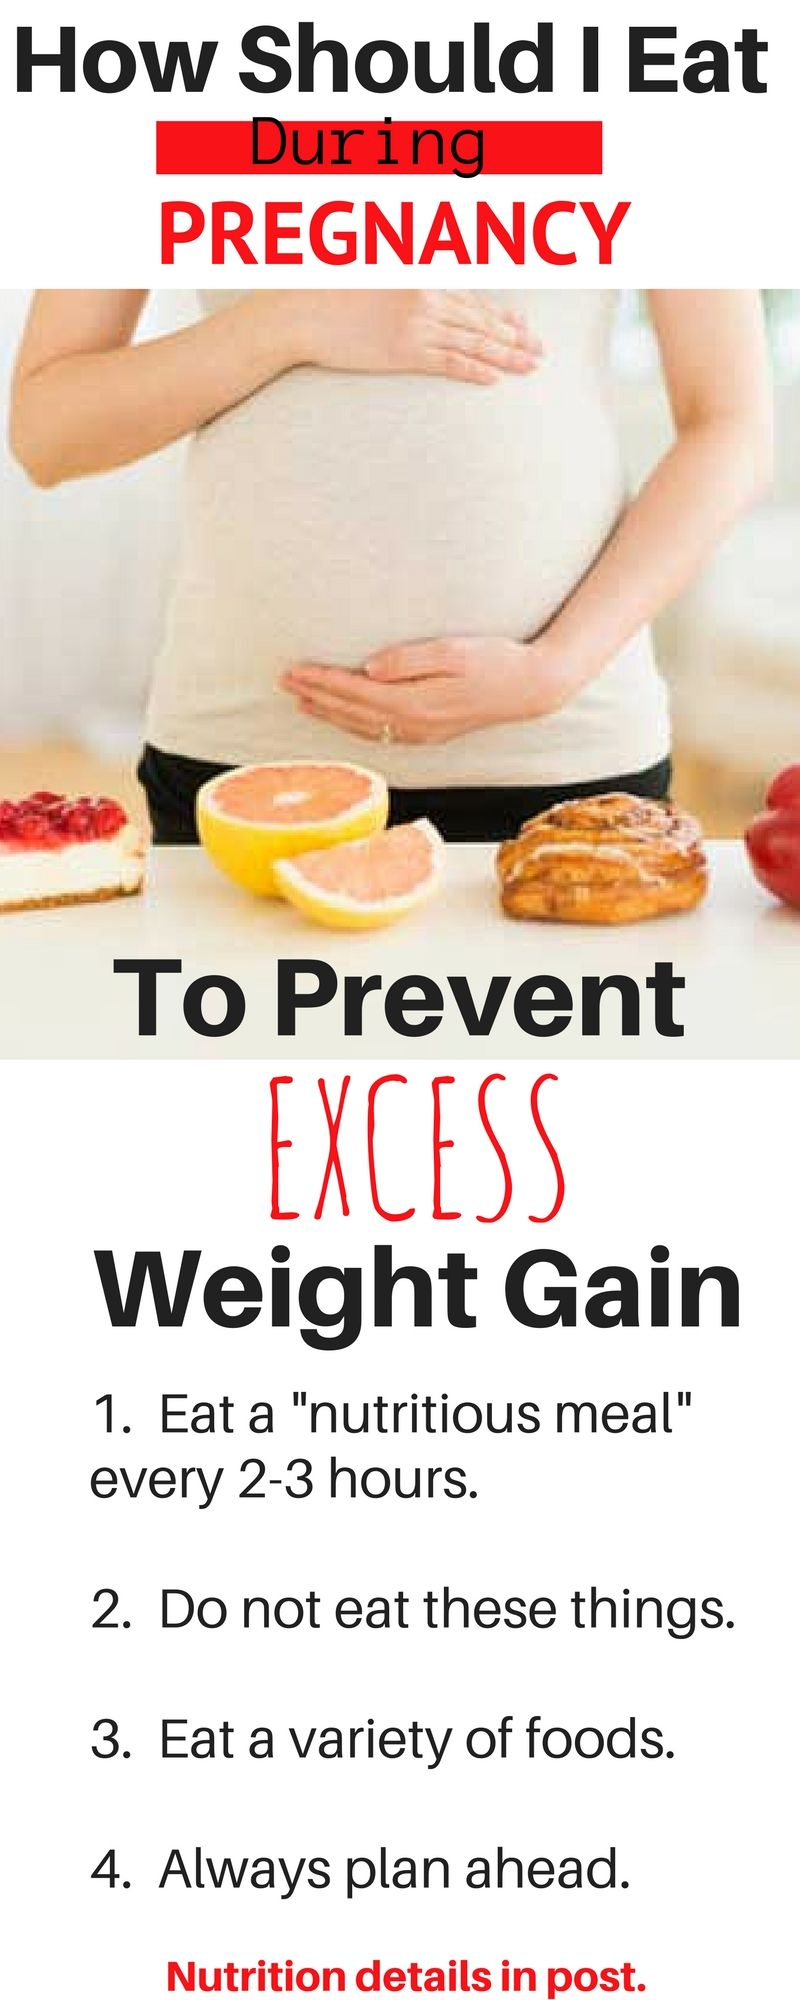 Clean Up Your Diet and Lose Weight